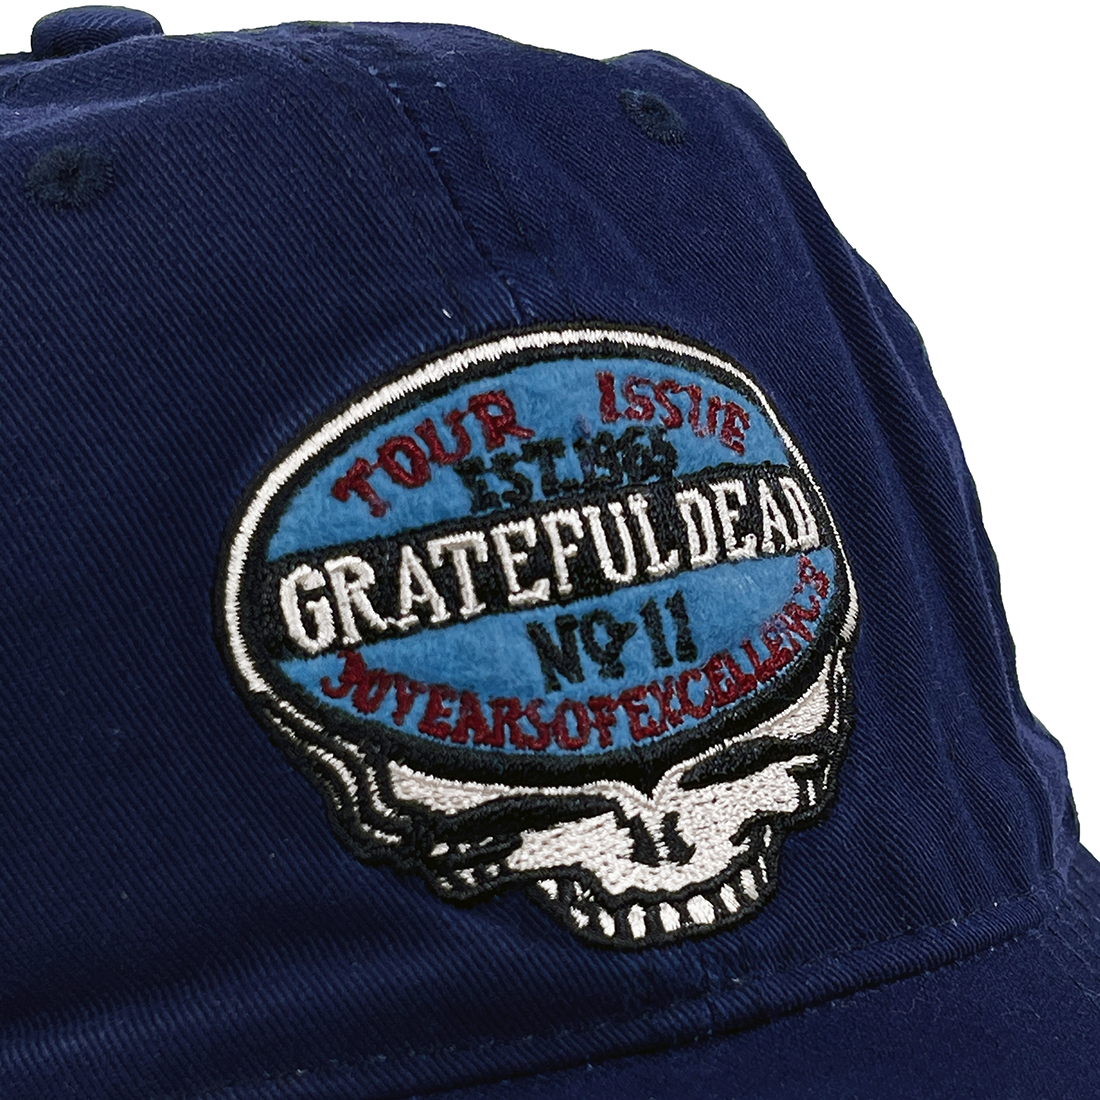 Steal Your Face Tour Issue Navy Hat